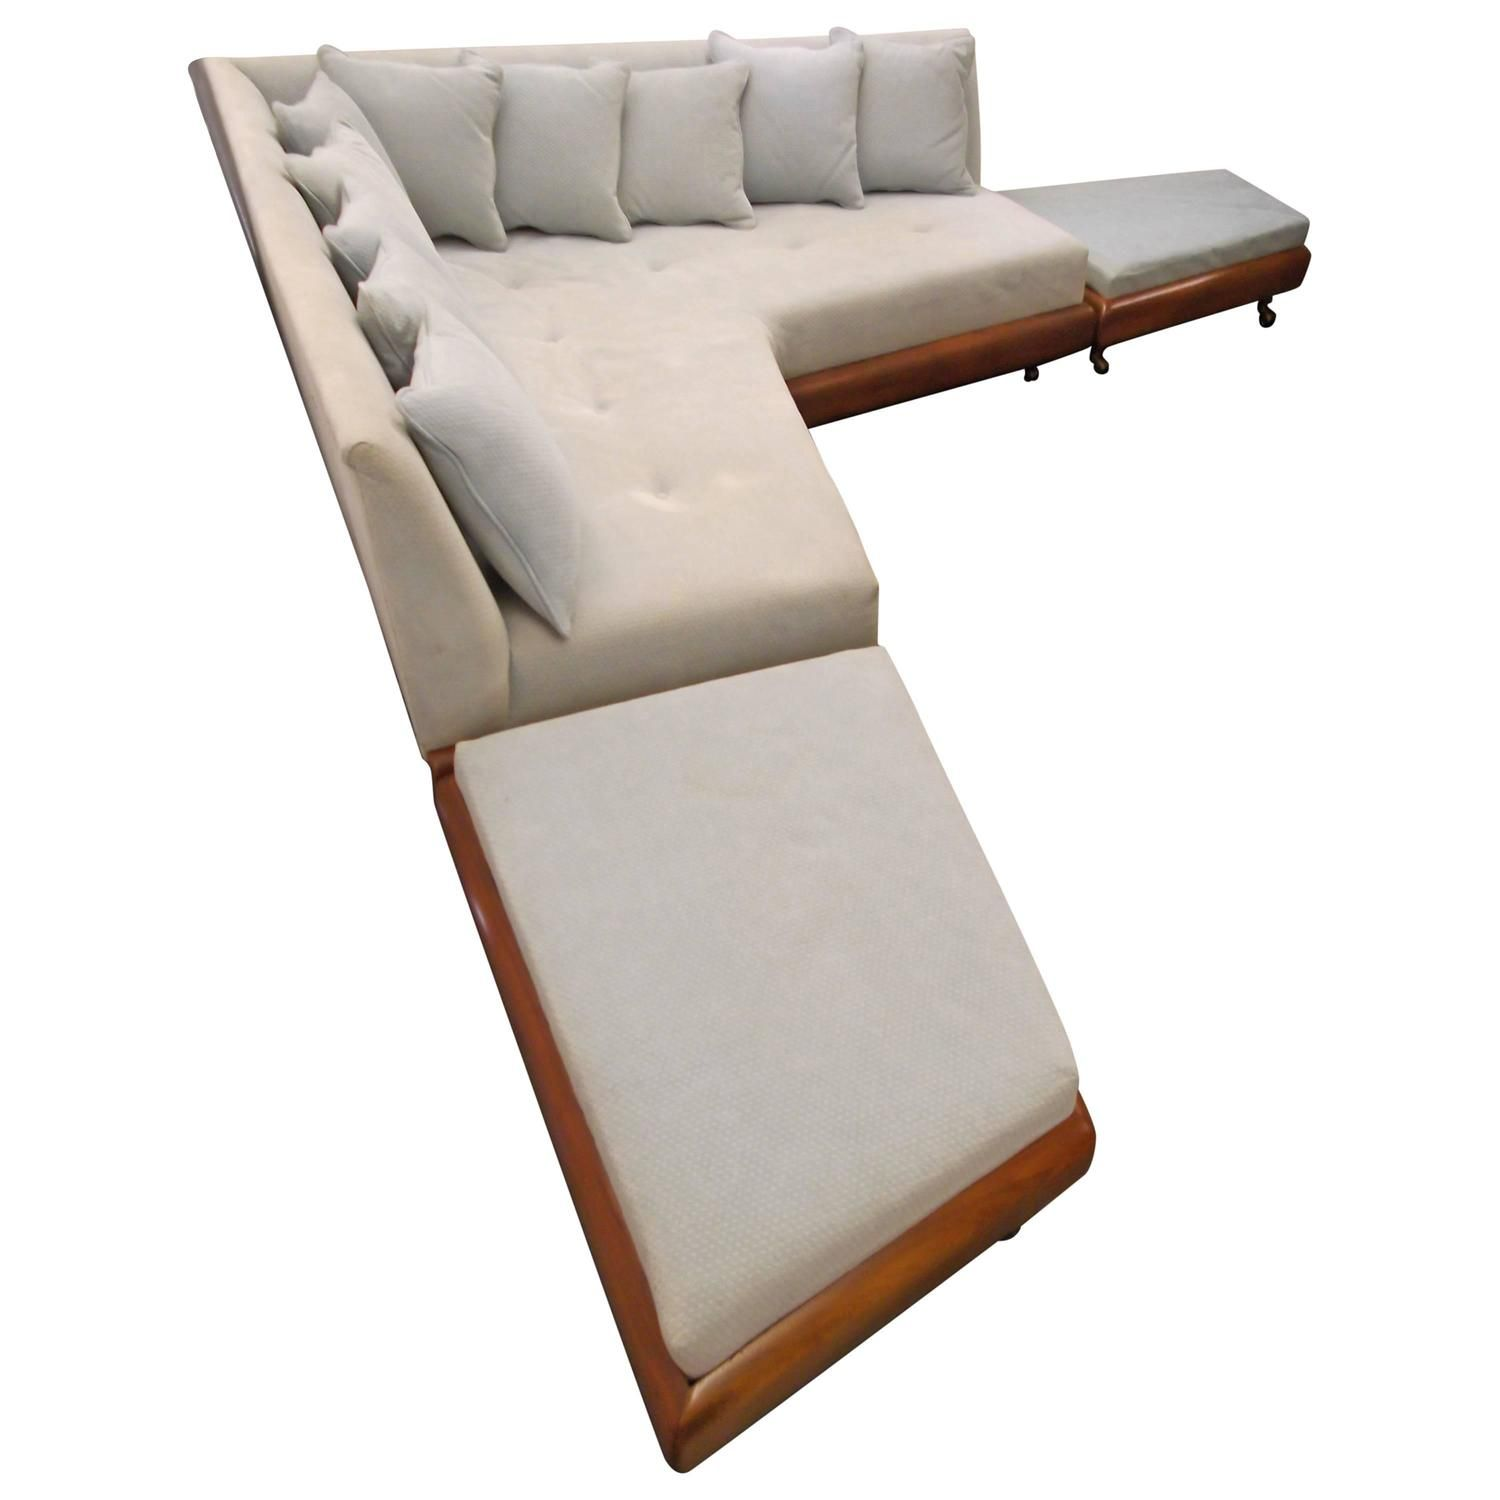 Swell Awesome Adrian Pearsall Boomerang L Sofa Ottoman Set My Gamerscity Chair Design For Home Gamerscityorg